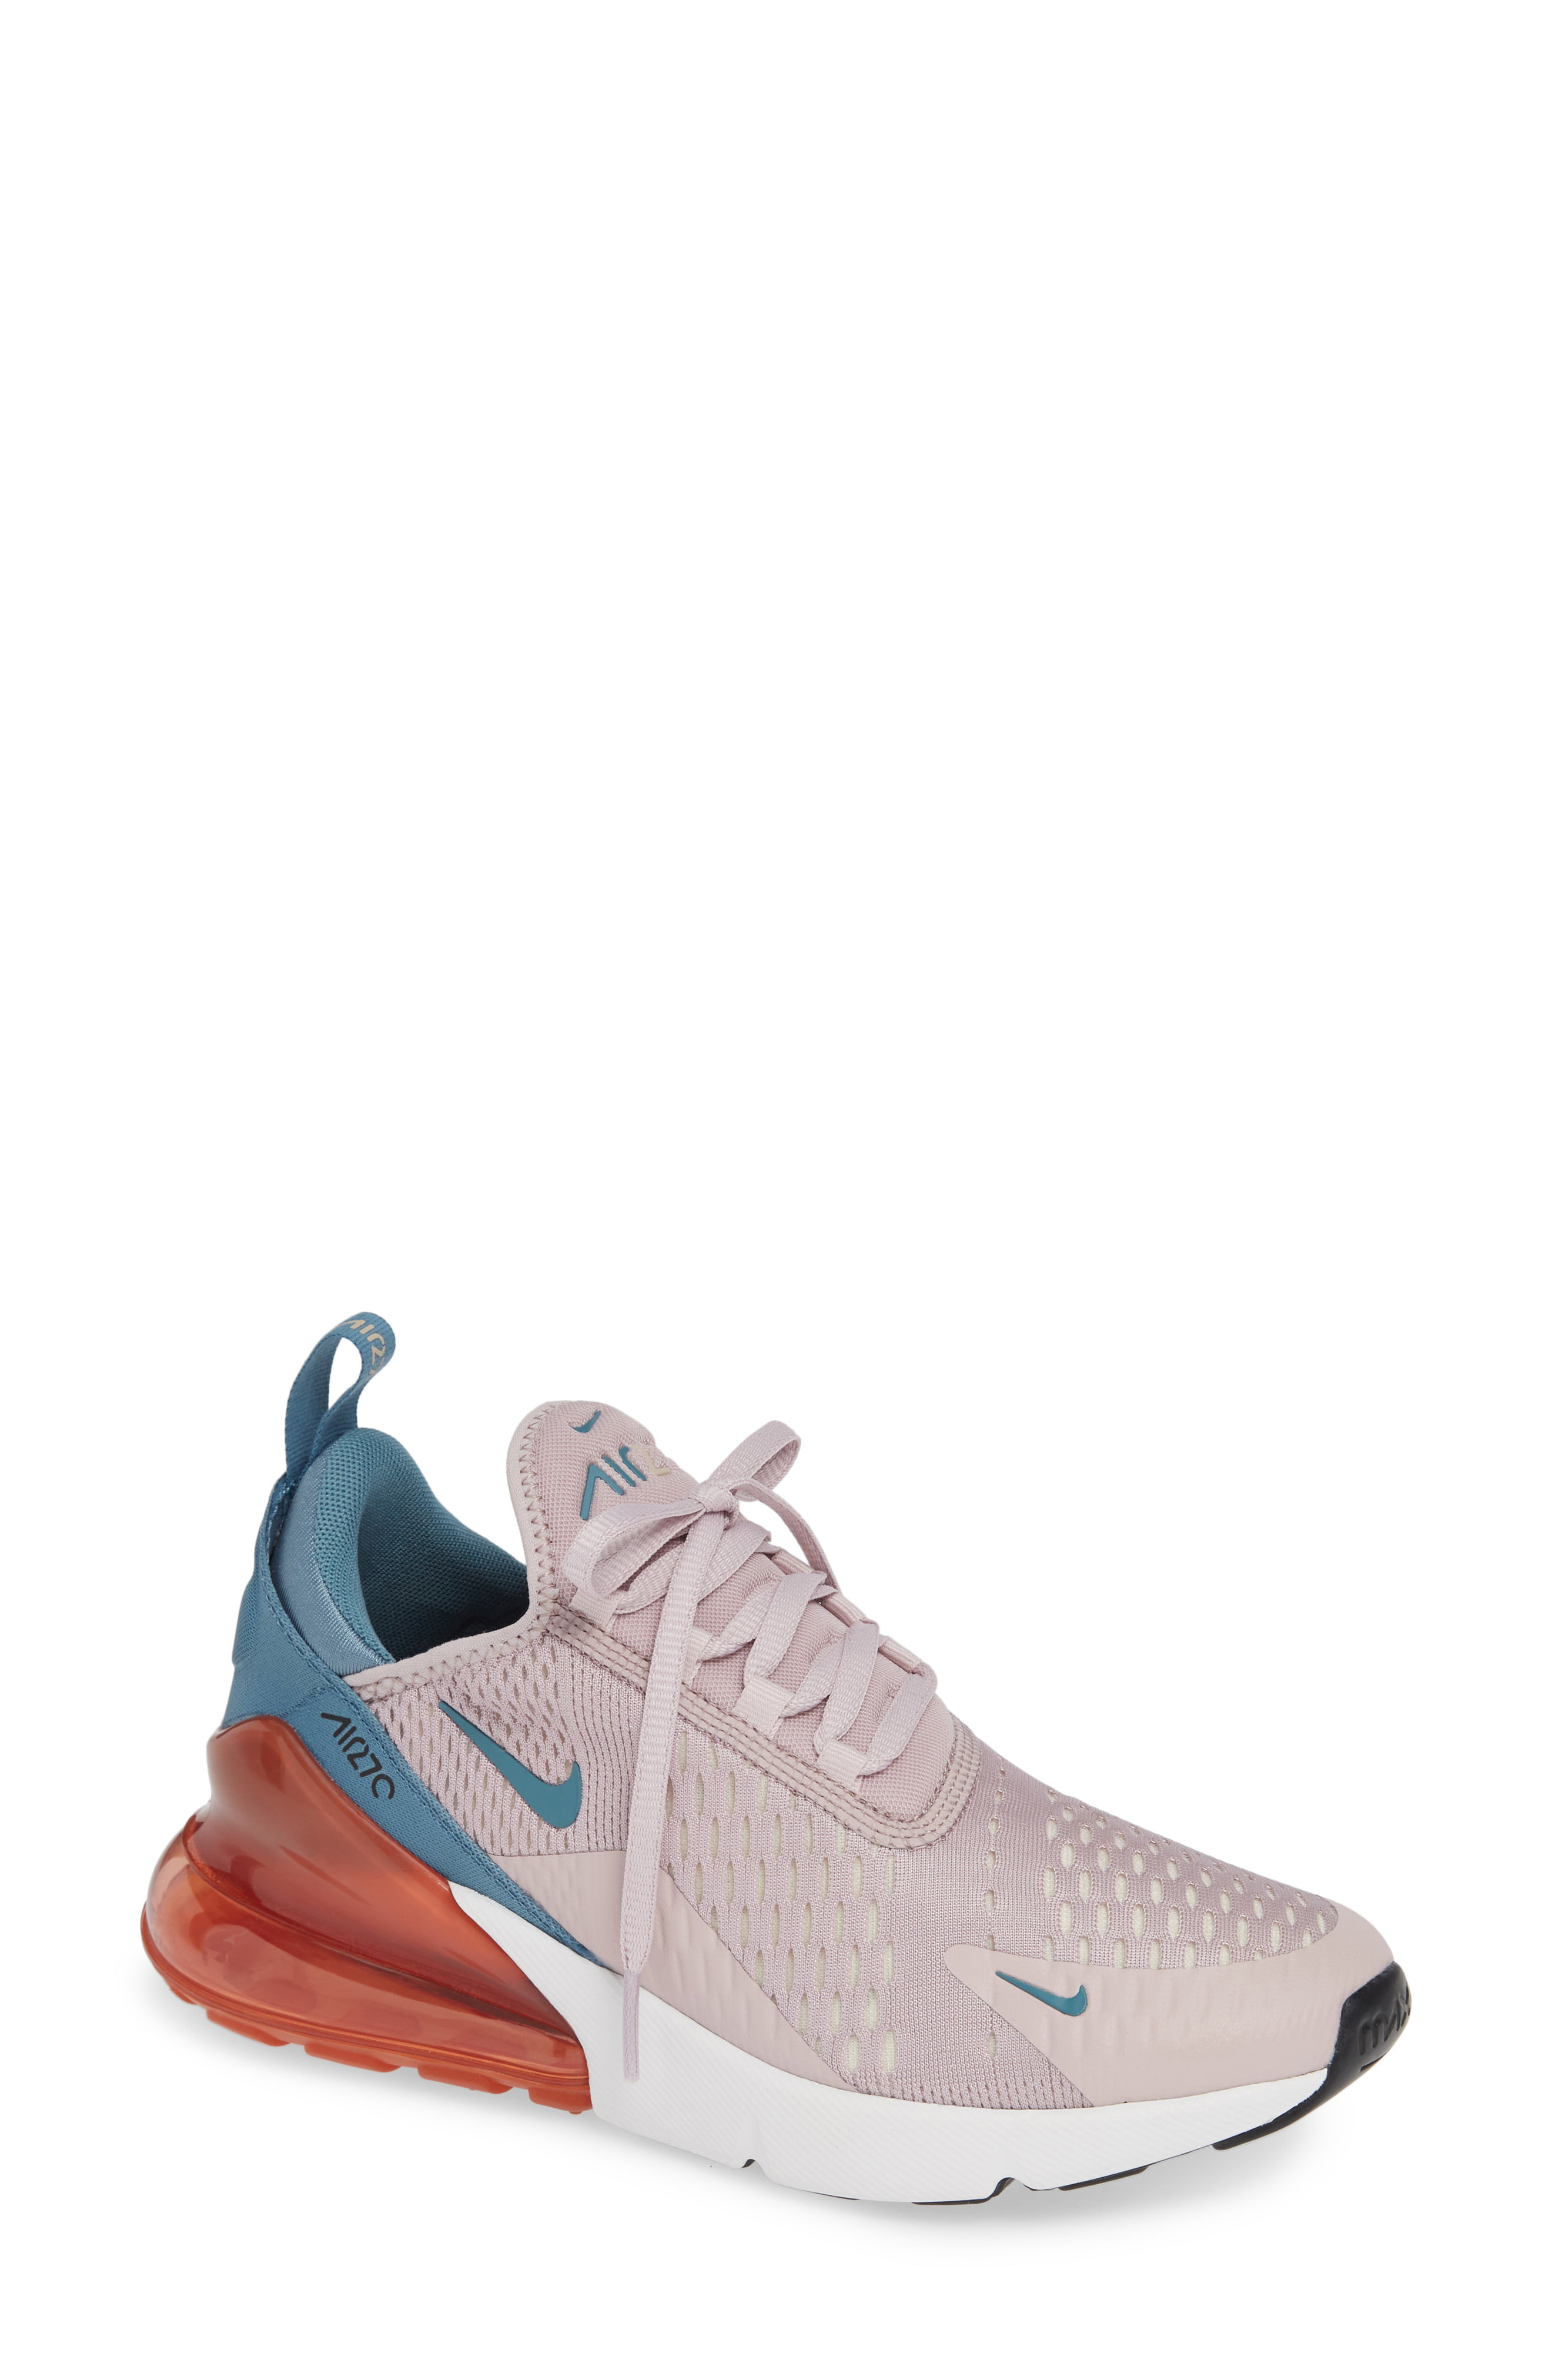 Nike Women's Nike Air Max 270 Premium Sneaker, Size 5.5 M White from NORDSTROM | Shop